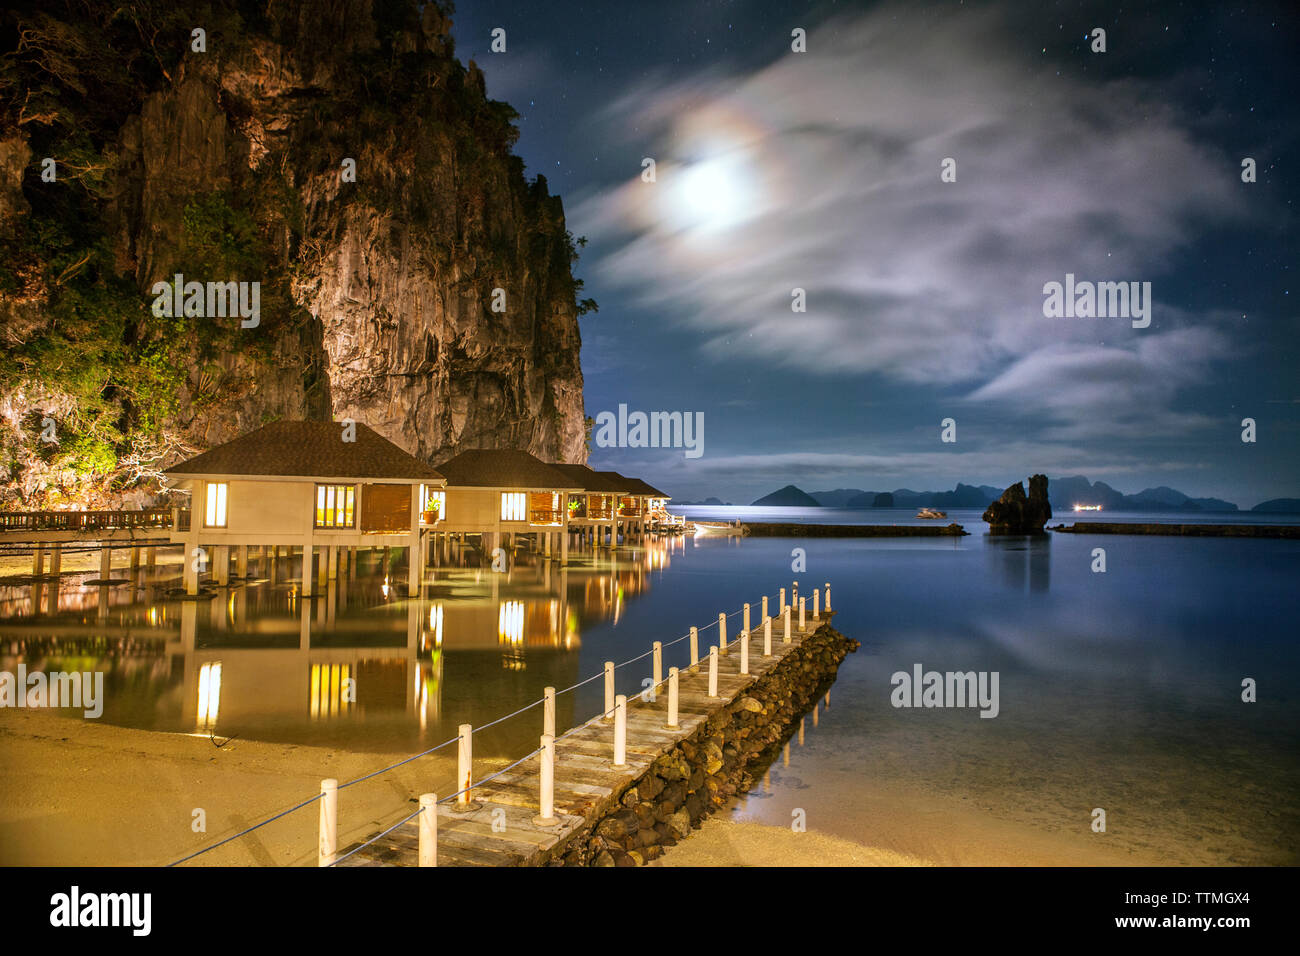 PHILIPPINES, Palawan, El Nido, night view of the Lagen Island Resort cottages which sit over the water and below the rocky cliffs, Bacuit Bay in the S - Stock Image